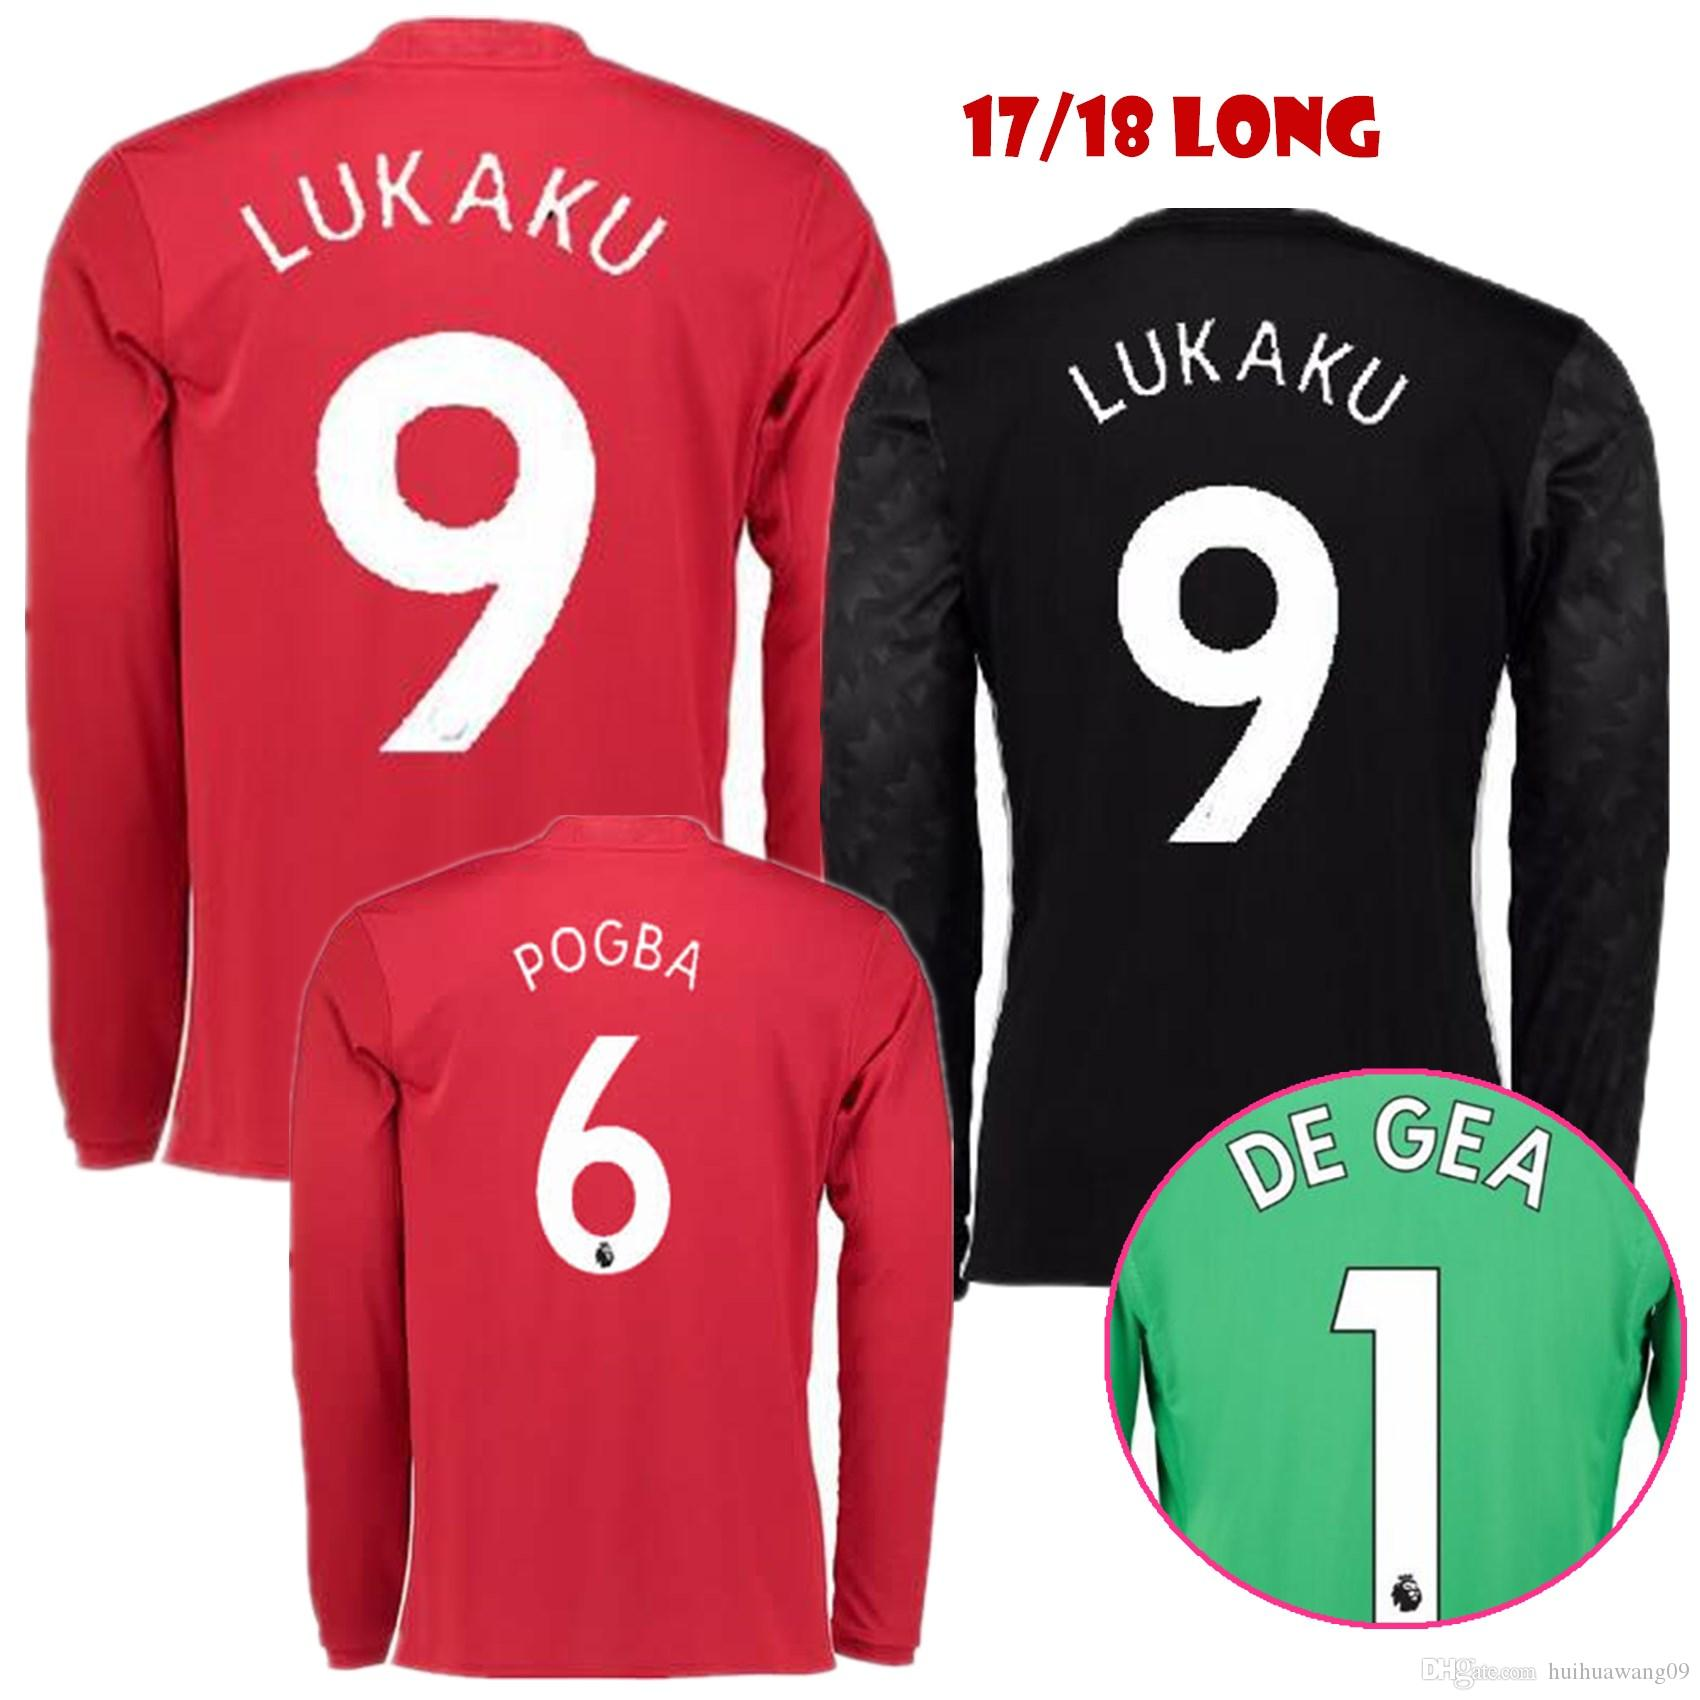 2017 2017 2018 long sleeve united lukaku soccer jerseys carrick man utd jersey 17 18 pogba mens